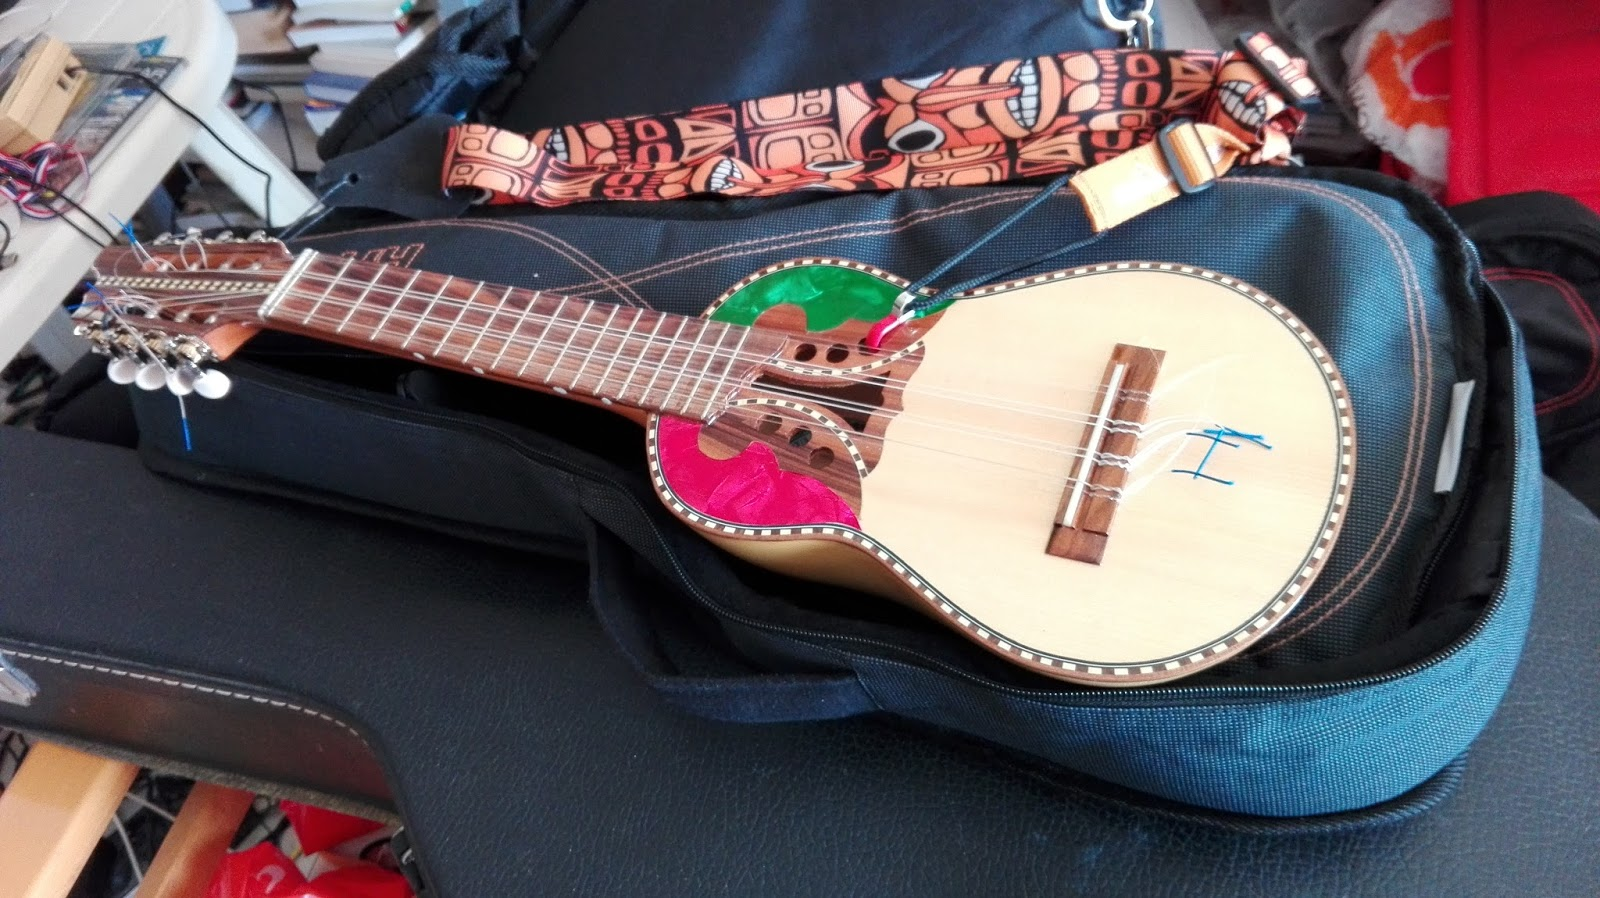 Musical Composition Improvisation With Abstract Visual Conceptual Psychological Perceptions 250 The Mando Lele Ukulele In Charango Body In The Pitch Of Mandolin Or Guitalele With Nylon Strings